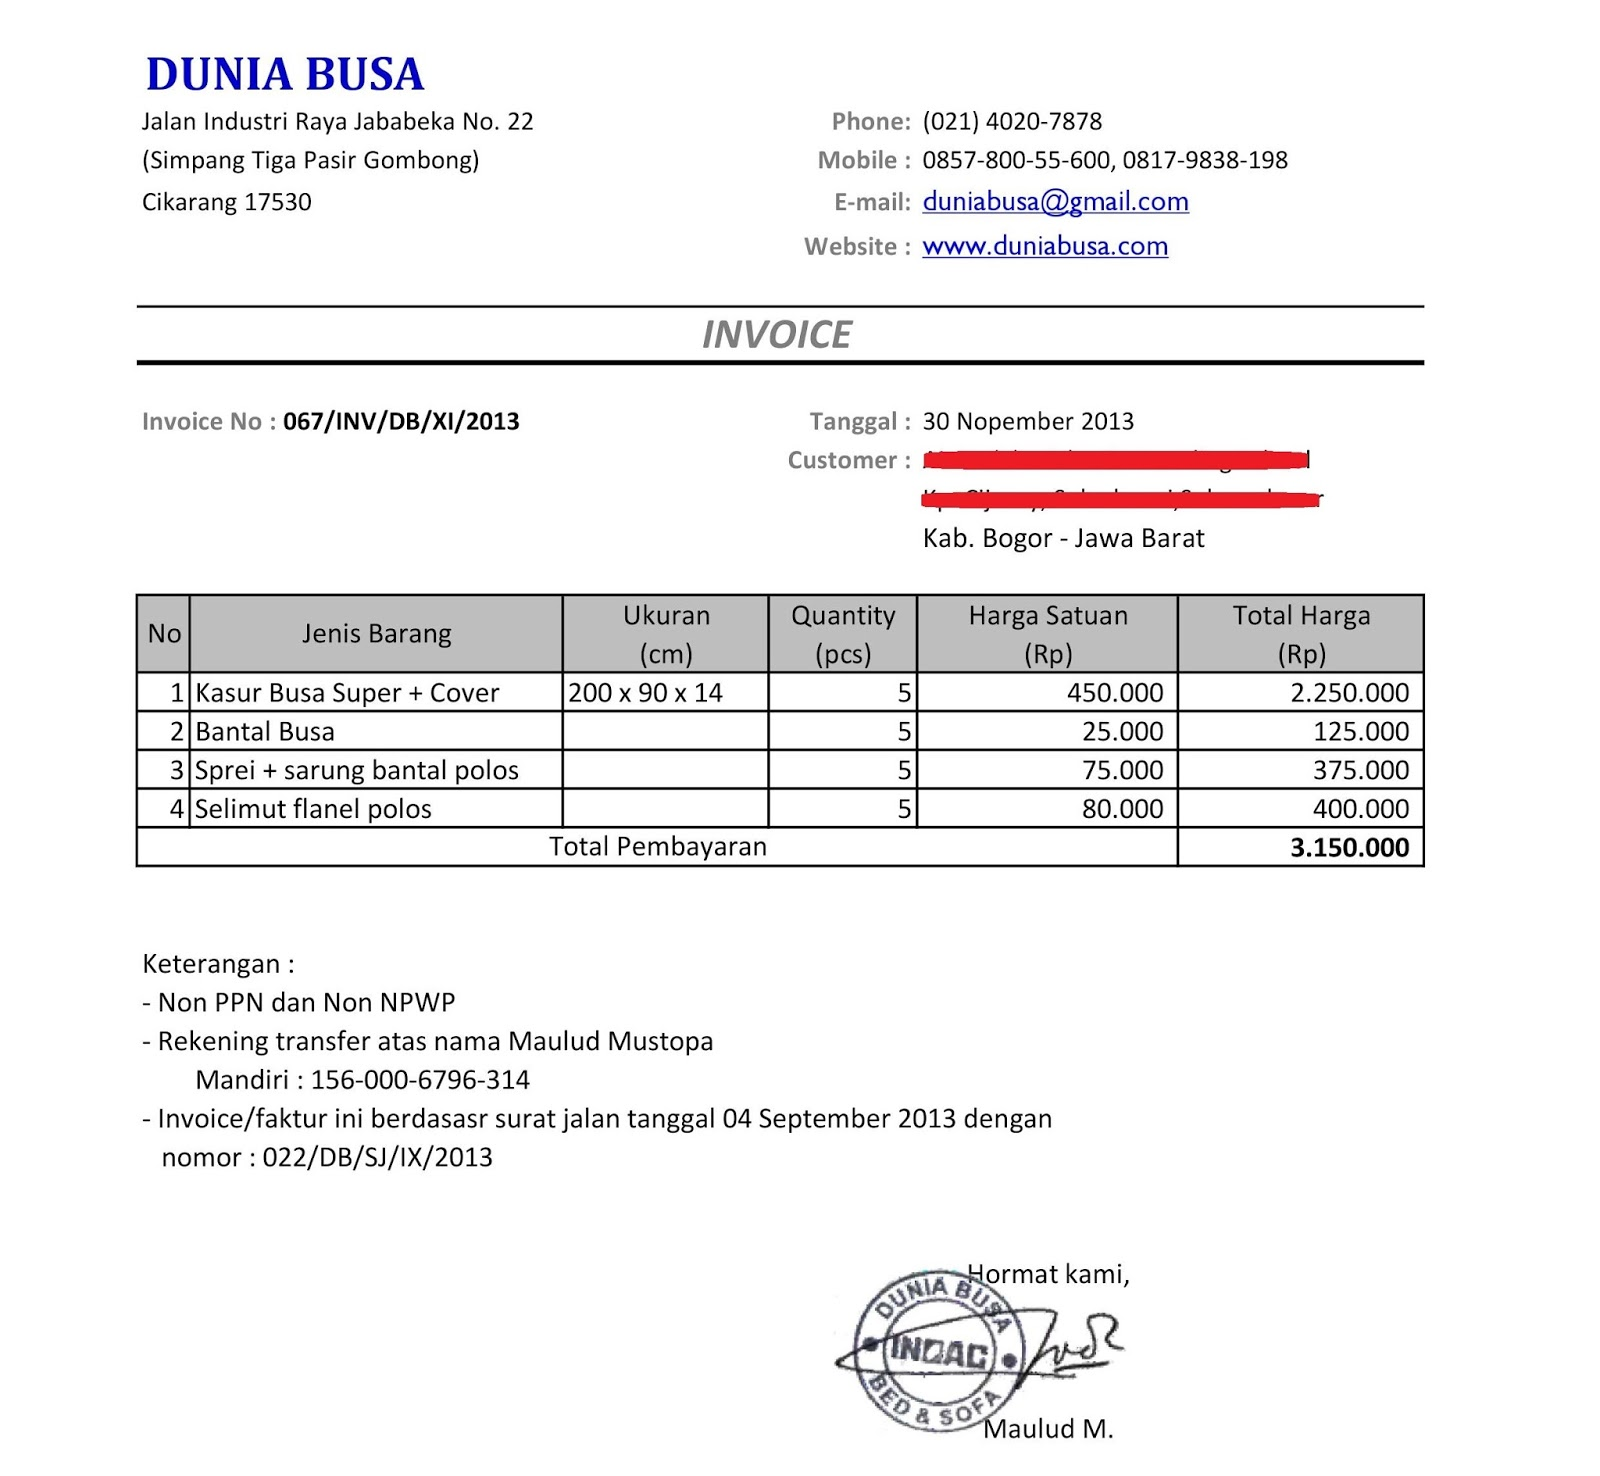 Usdgus  Stunning Free Invoice Online  Create Invoice Online  Invoice Template  With Licious Contoh Format Invoice Atau Surat Tagihan  Brankas Arsip  Free Invoice Online With Comely Creating An Invoice For Freelance Work Also Invoice Management Process In Addition Make Your Own Invoice Template And E Invoicing Rbs As Well As Best Invoicing Software For Small Businesses Additionally Specimen Of Invoice From Sklepco With Usdgus  Licious Free Invoice Online  Create Invoice Online  Invoice Template  With Comely Contoh Format Invoice Atau Surat Tagihan  Brankas Arsip  Free Invoice Online And Stunning Creating An Invoice For Freelance Work Also Invoice Management Process In Addition Make Your Own Invoice Template From Sklepco